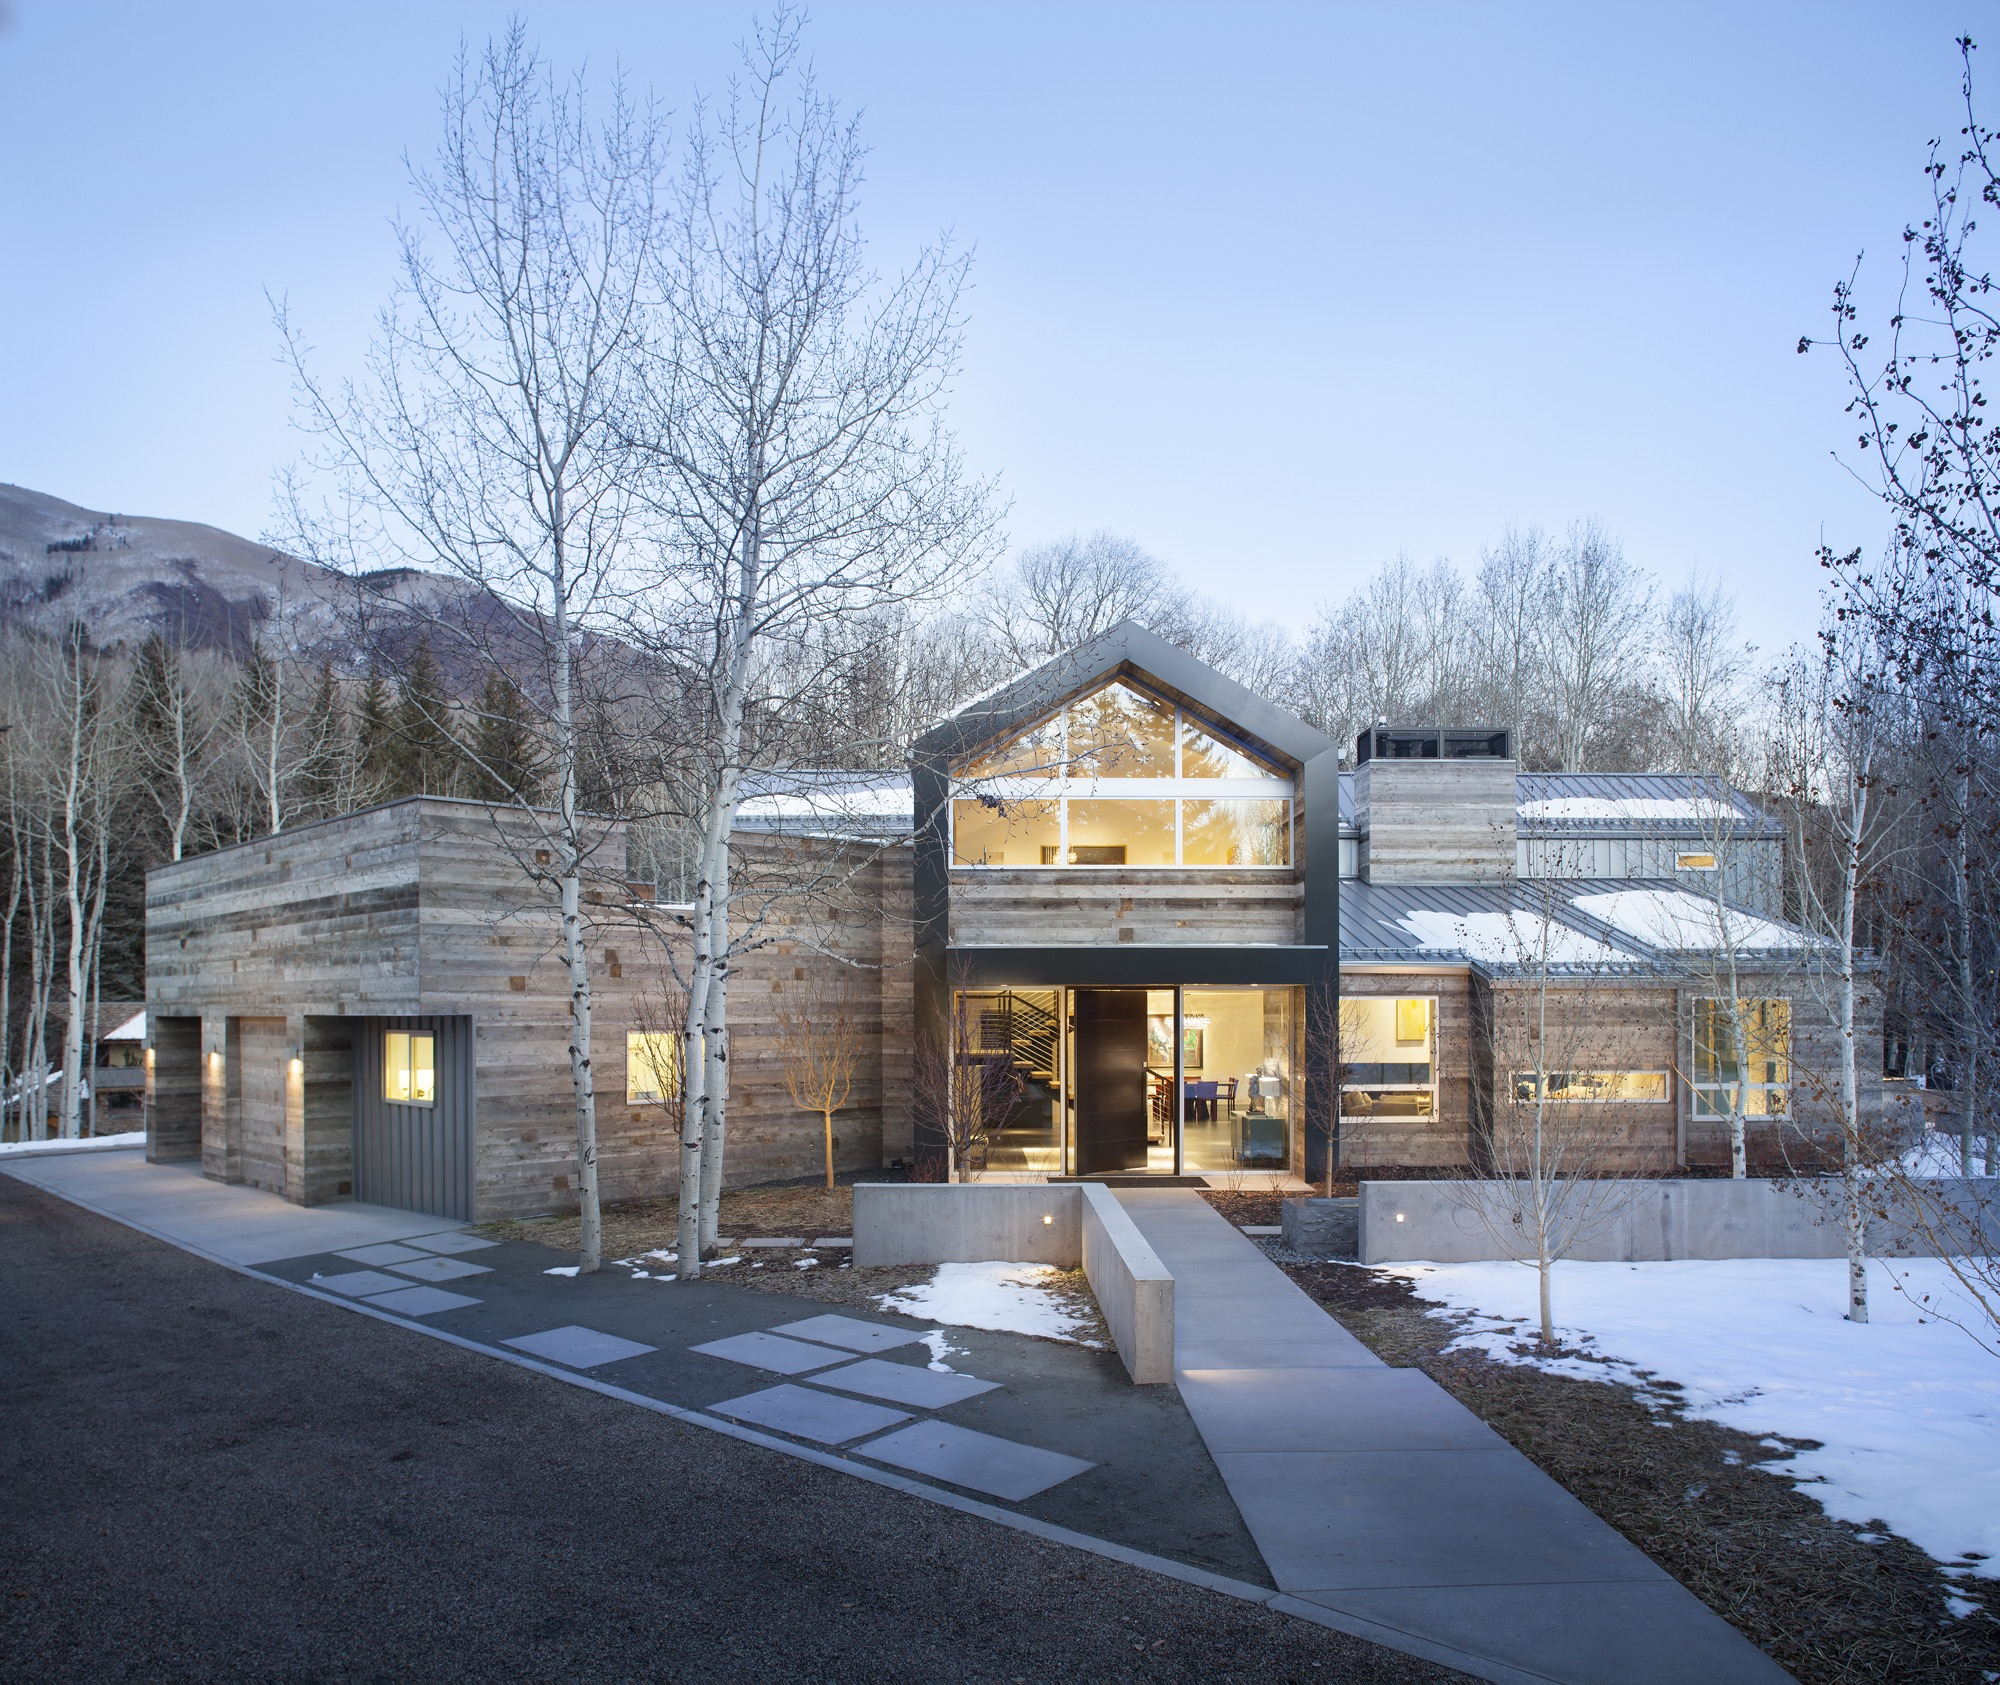 Black Birch Modern in Aspen, Colorado, by architecture and interior design firm Rowland and Broughton